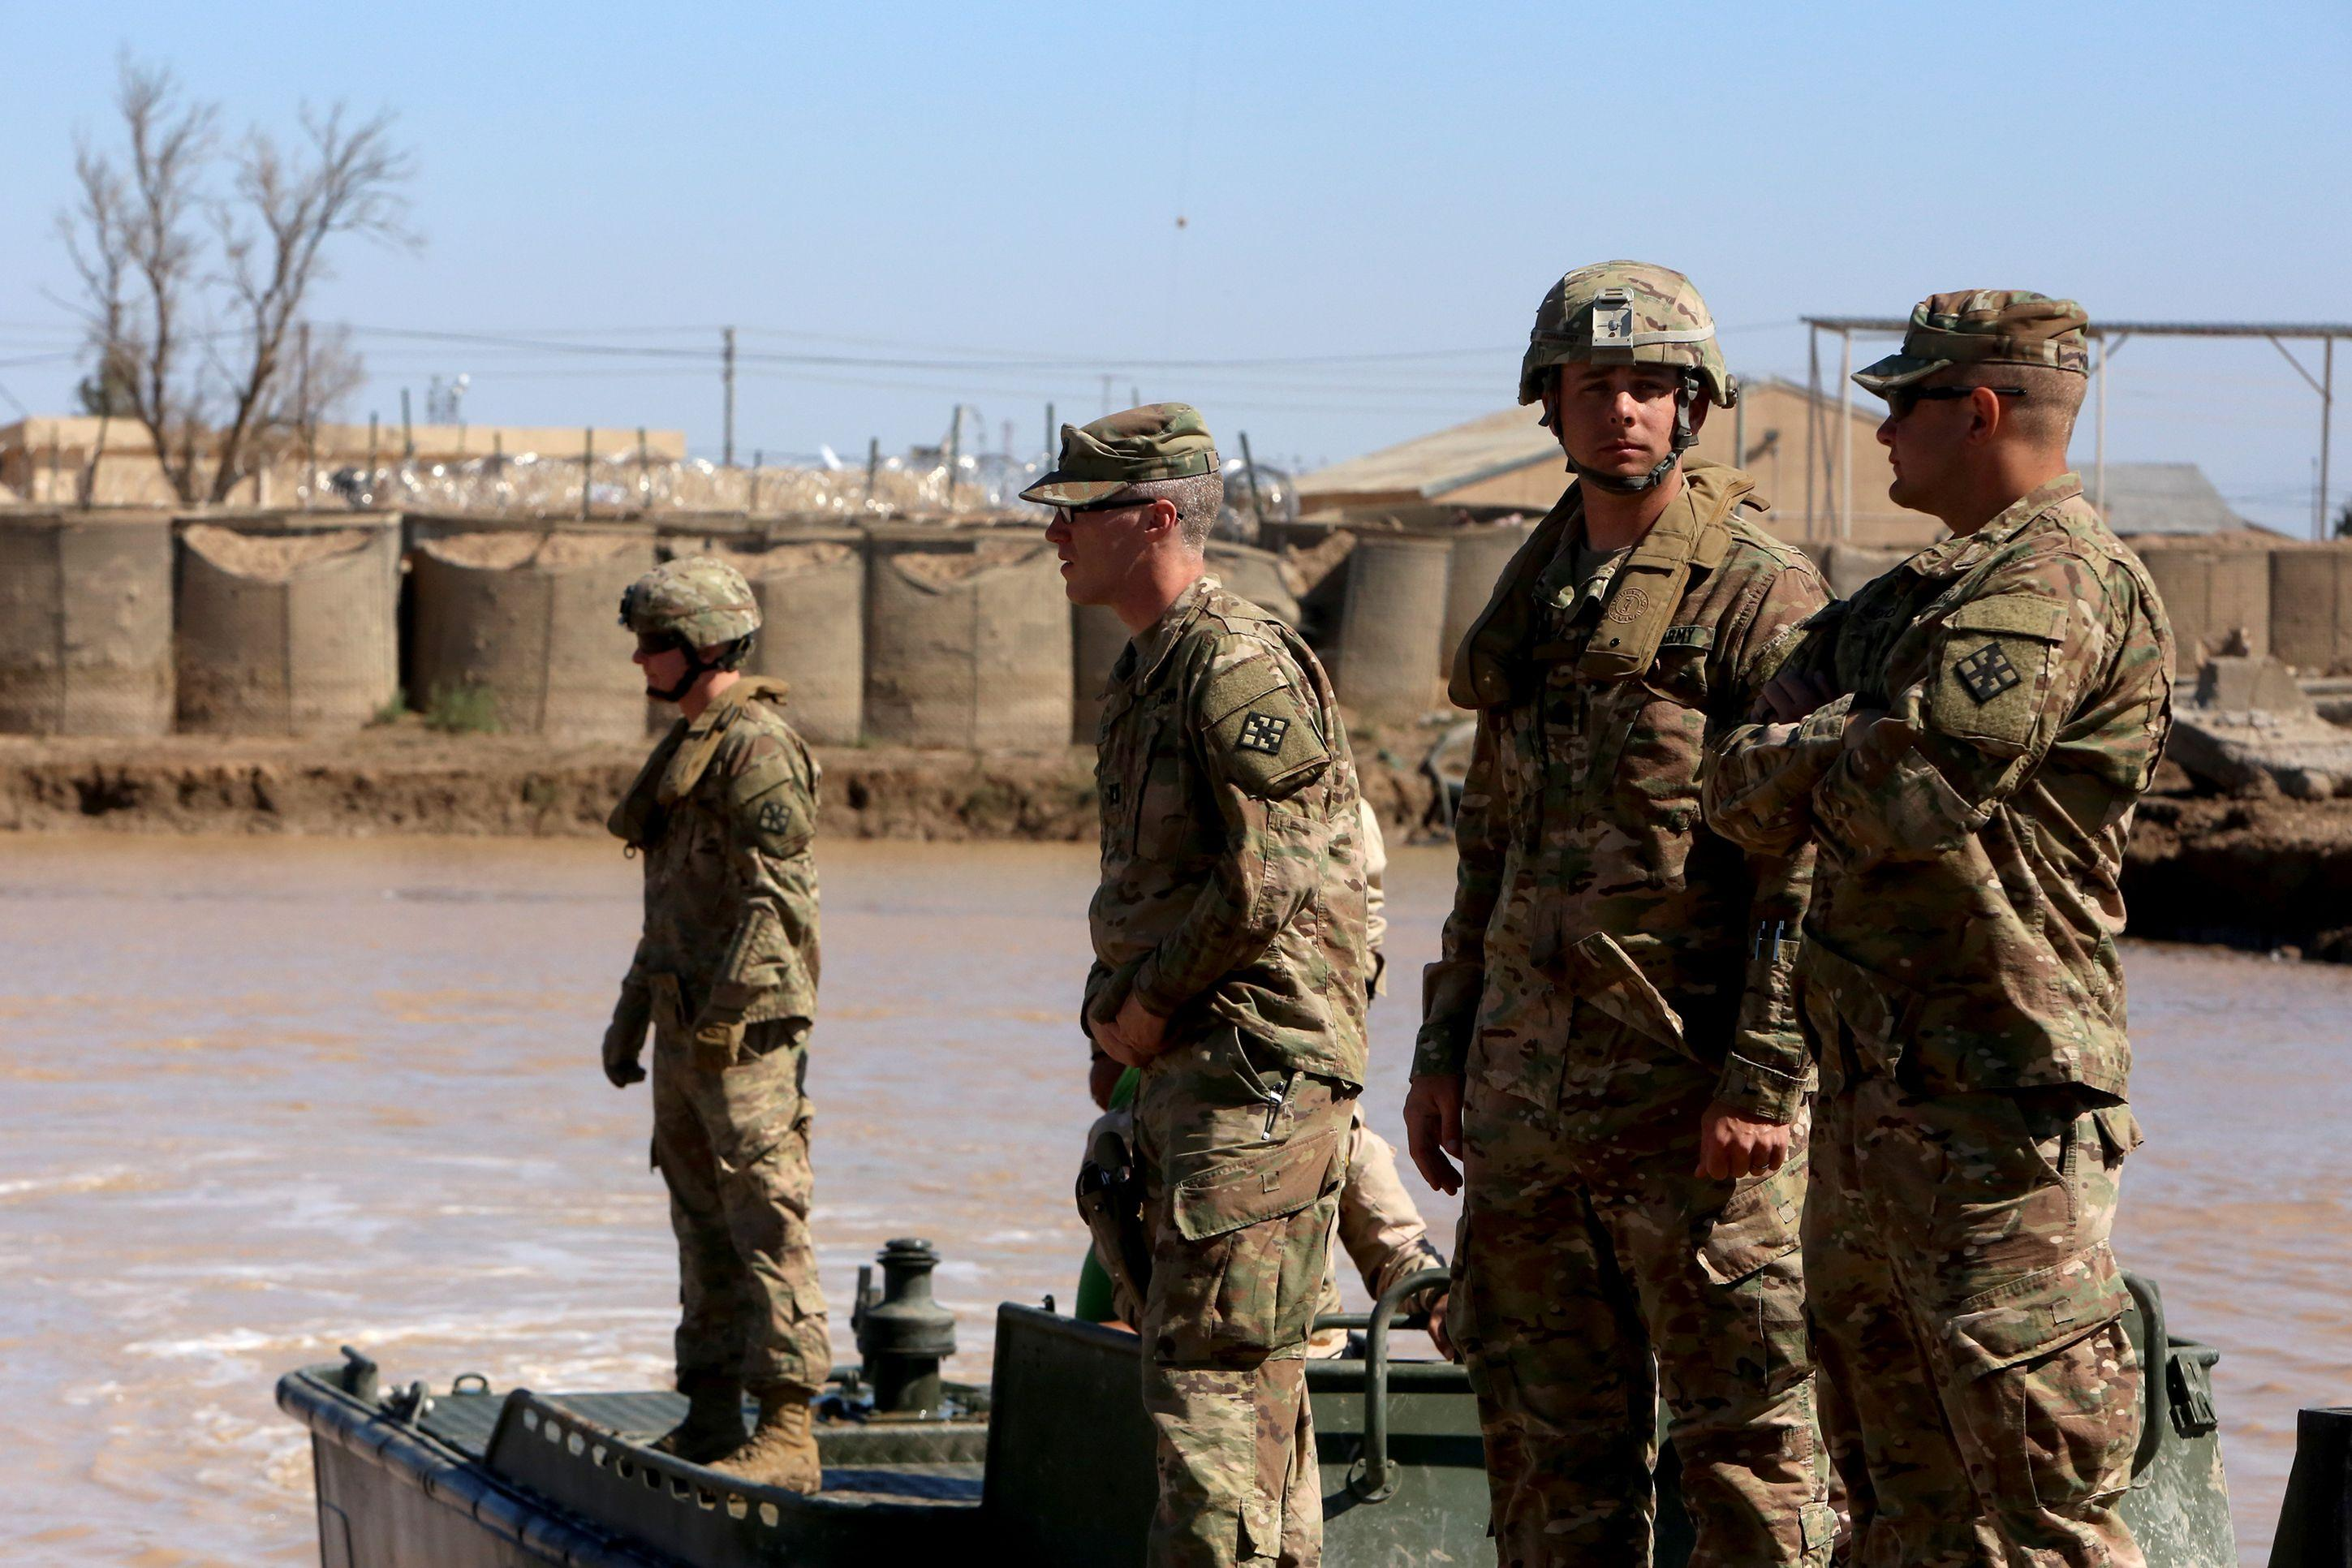 Iraq US troops drawdown reported by AP after military